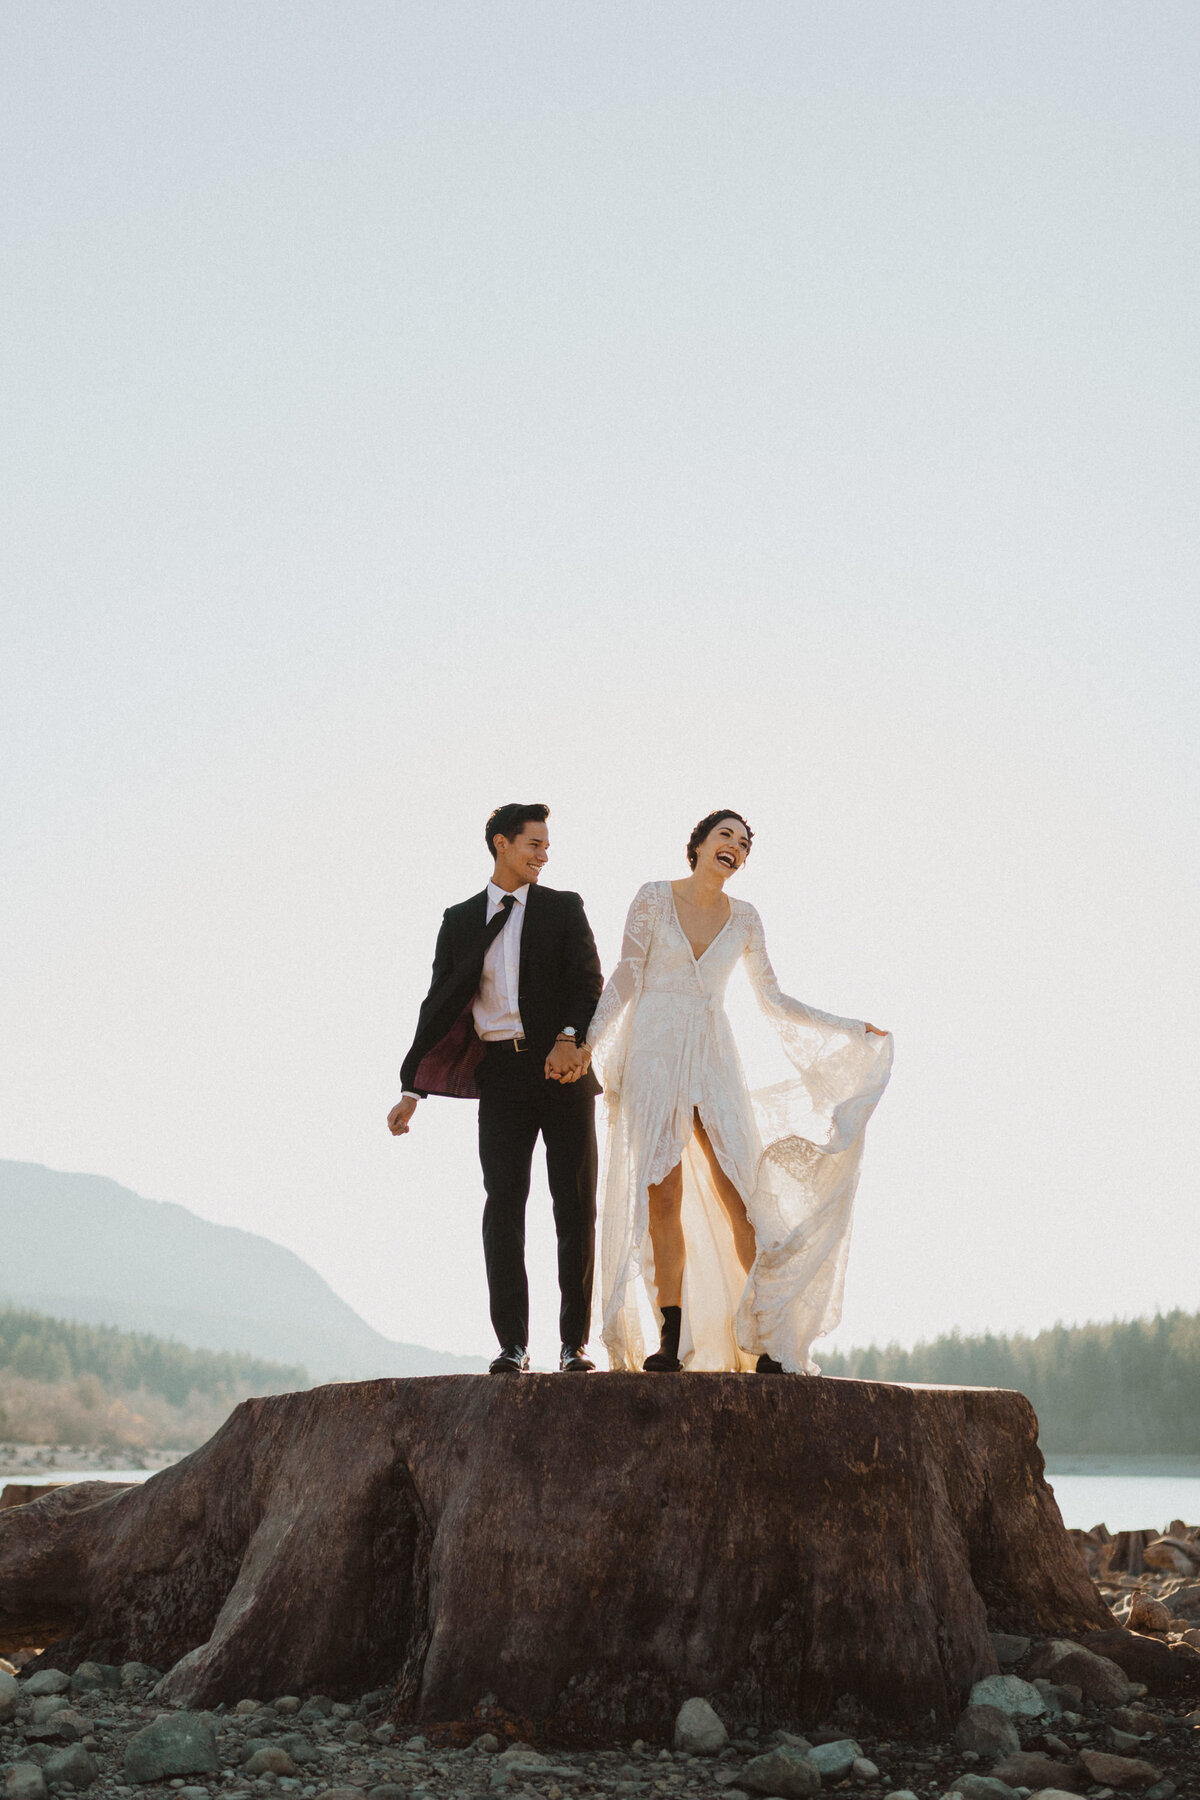 liv_hettinga_photography_seattle_lake_adventure_elopement-9